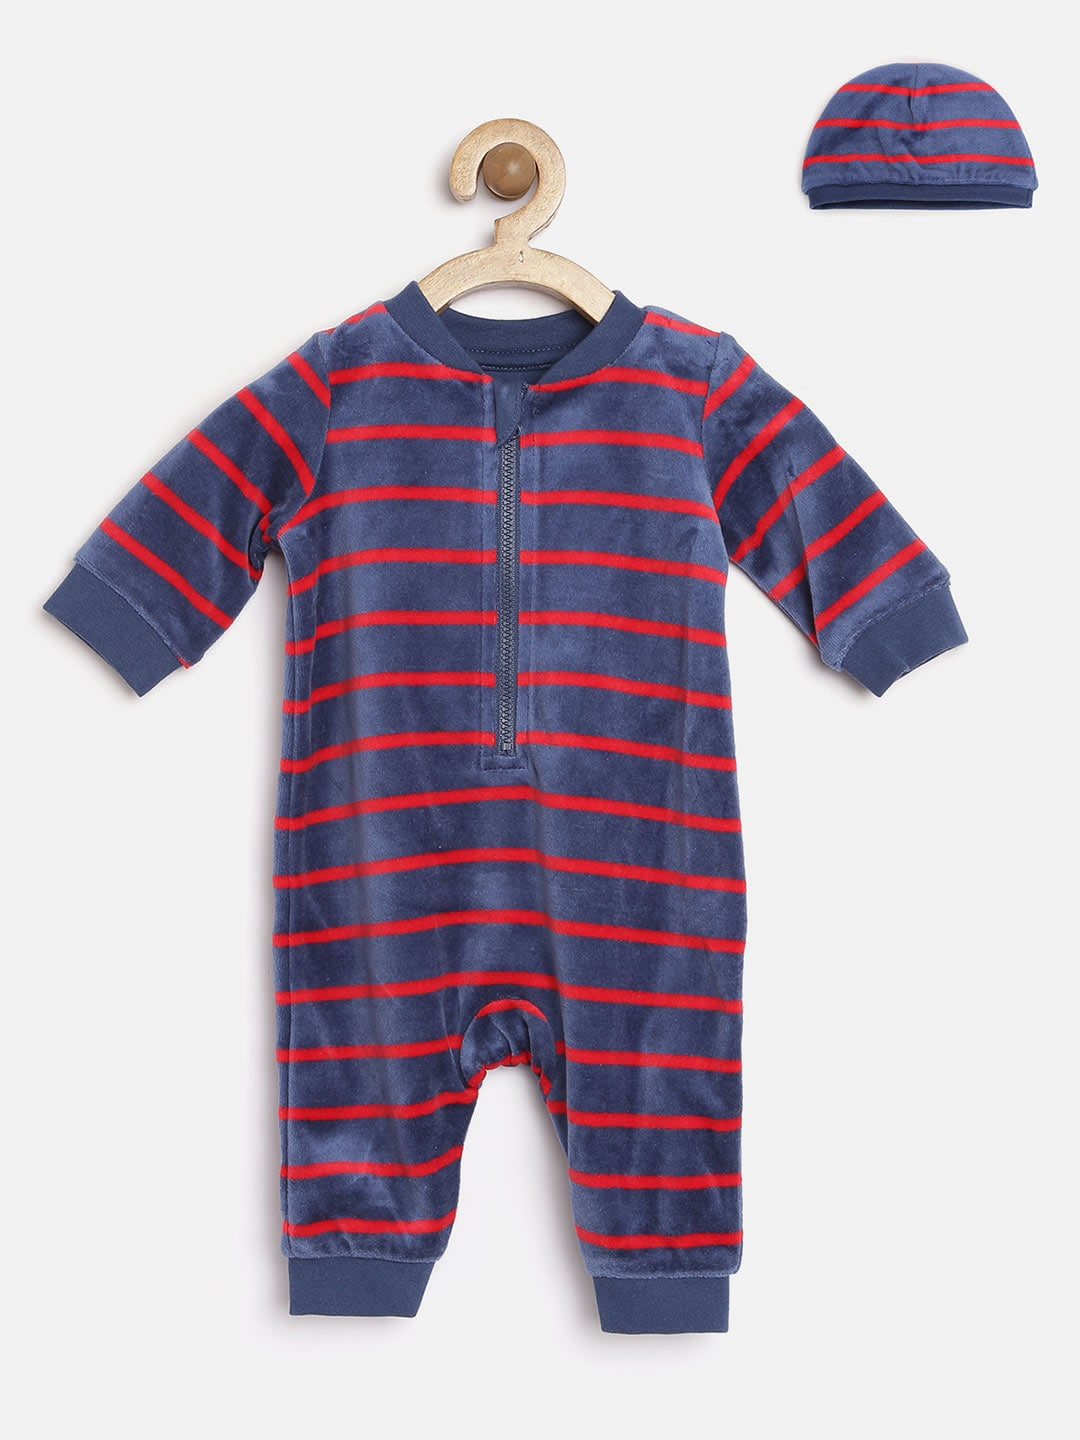 mothercare Infant Boys Navy Striped Romper with Beanie